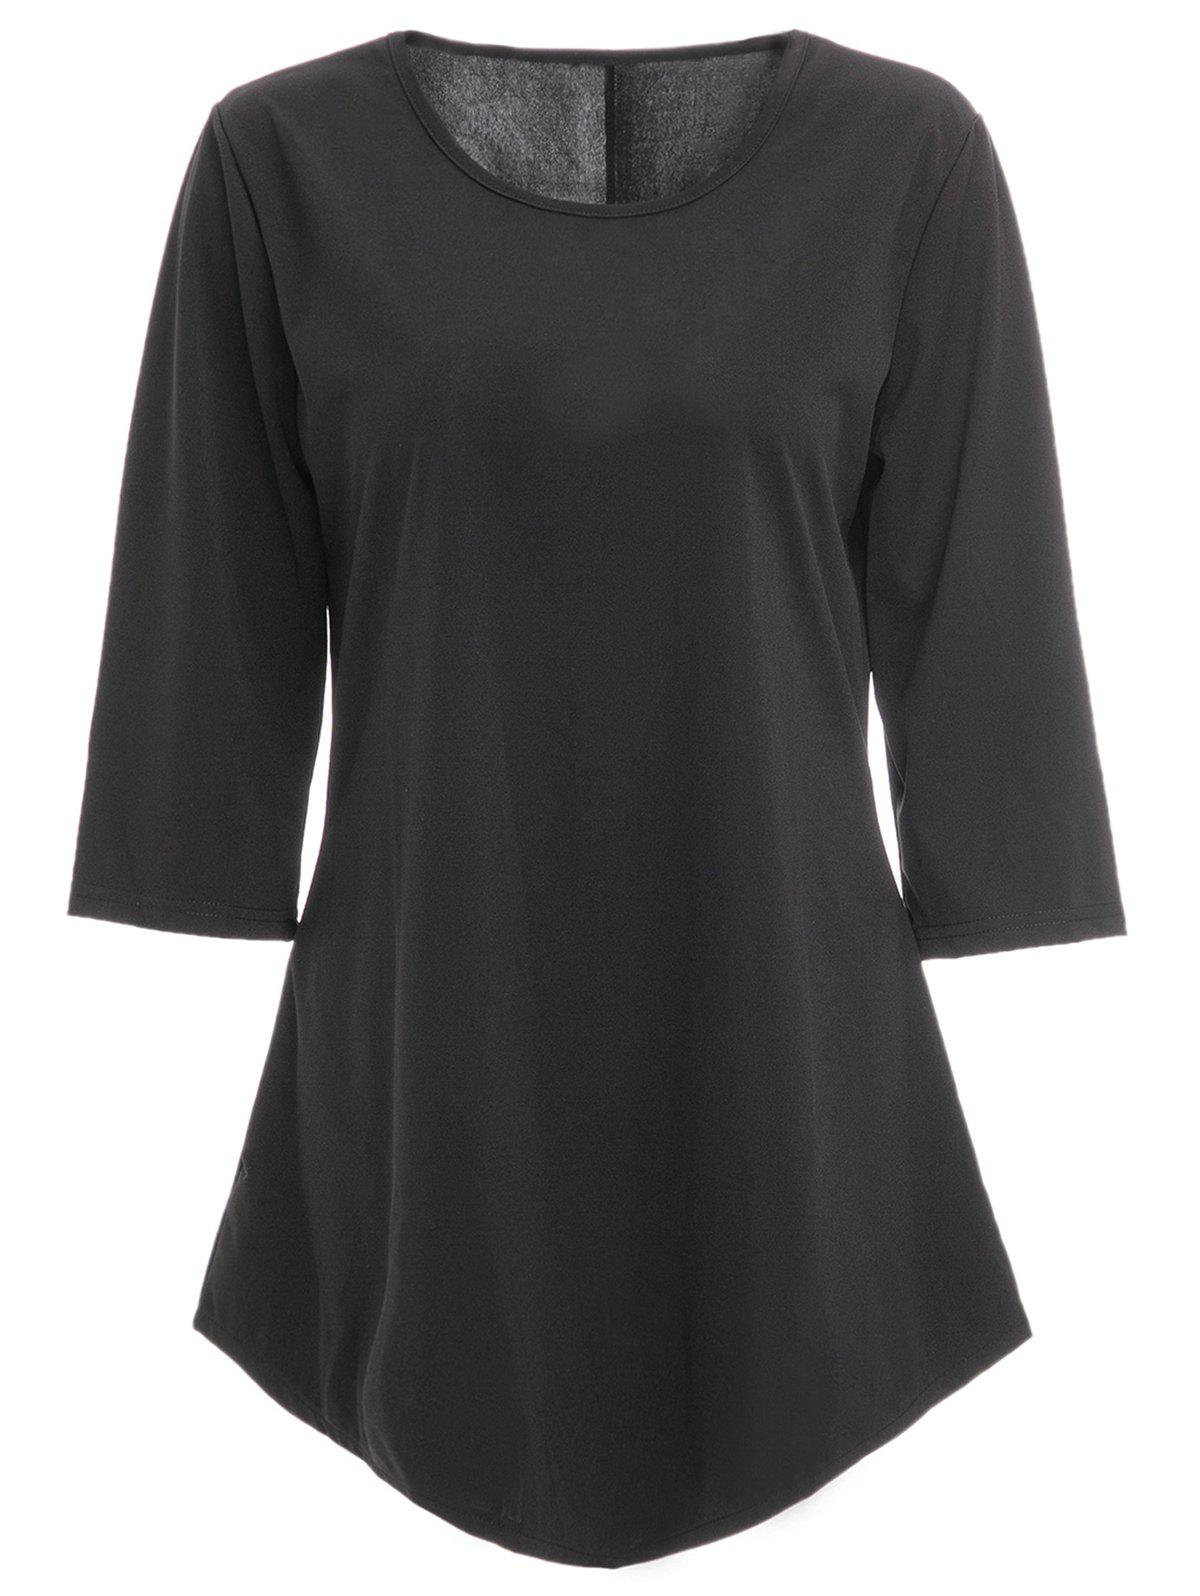 Chic 3/4 Sleeve Round Neck Pure Color Asymmetrical Womens T-ShirtWomen<br><br><br>Size: M<br>Color: BLACK